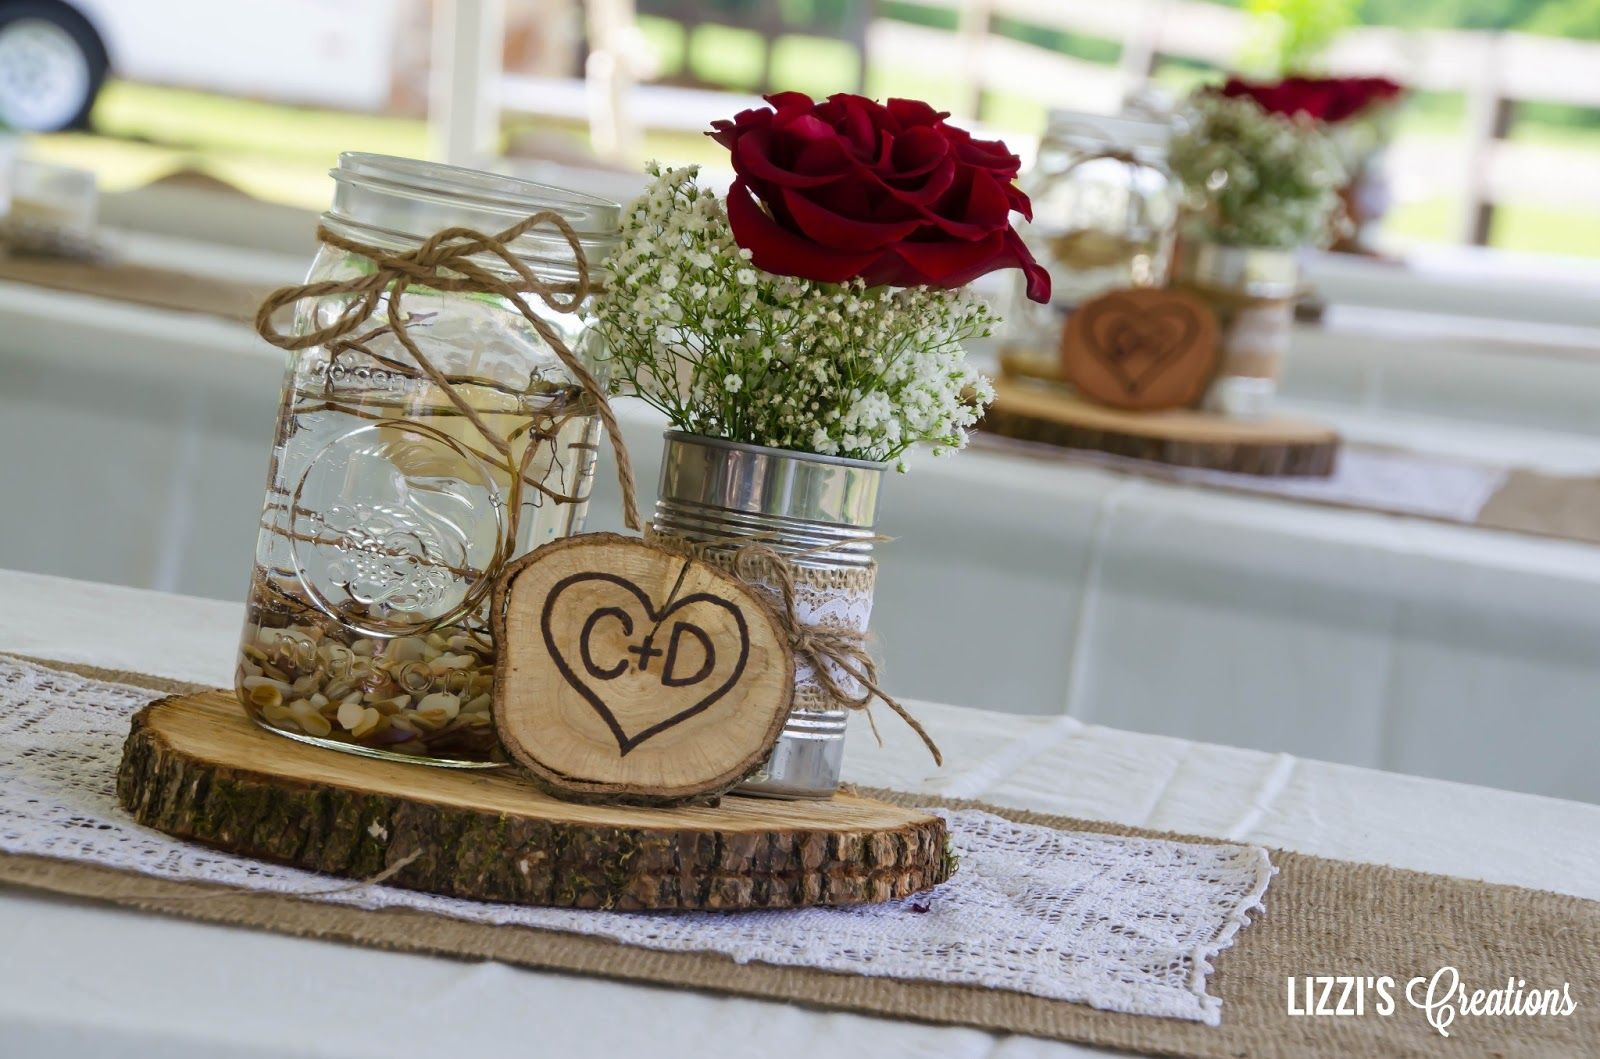 Inexpensive wedding centerpiece ideas using mason jars and burlap inexpensive wedding centerpiece ideas using mason jars and burlap other flower arrangements were done using tin cans burlap lace junglespirit Gallery